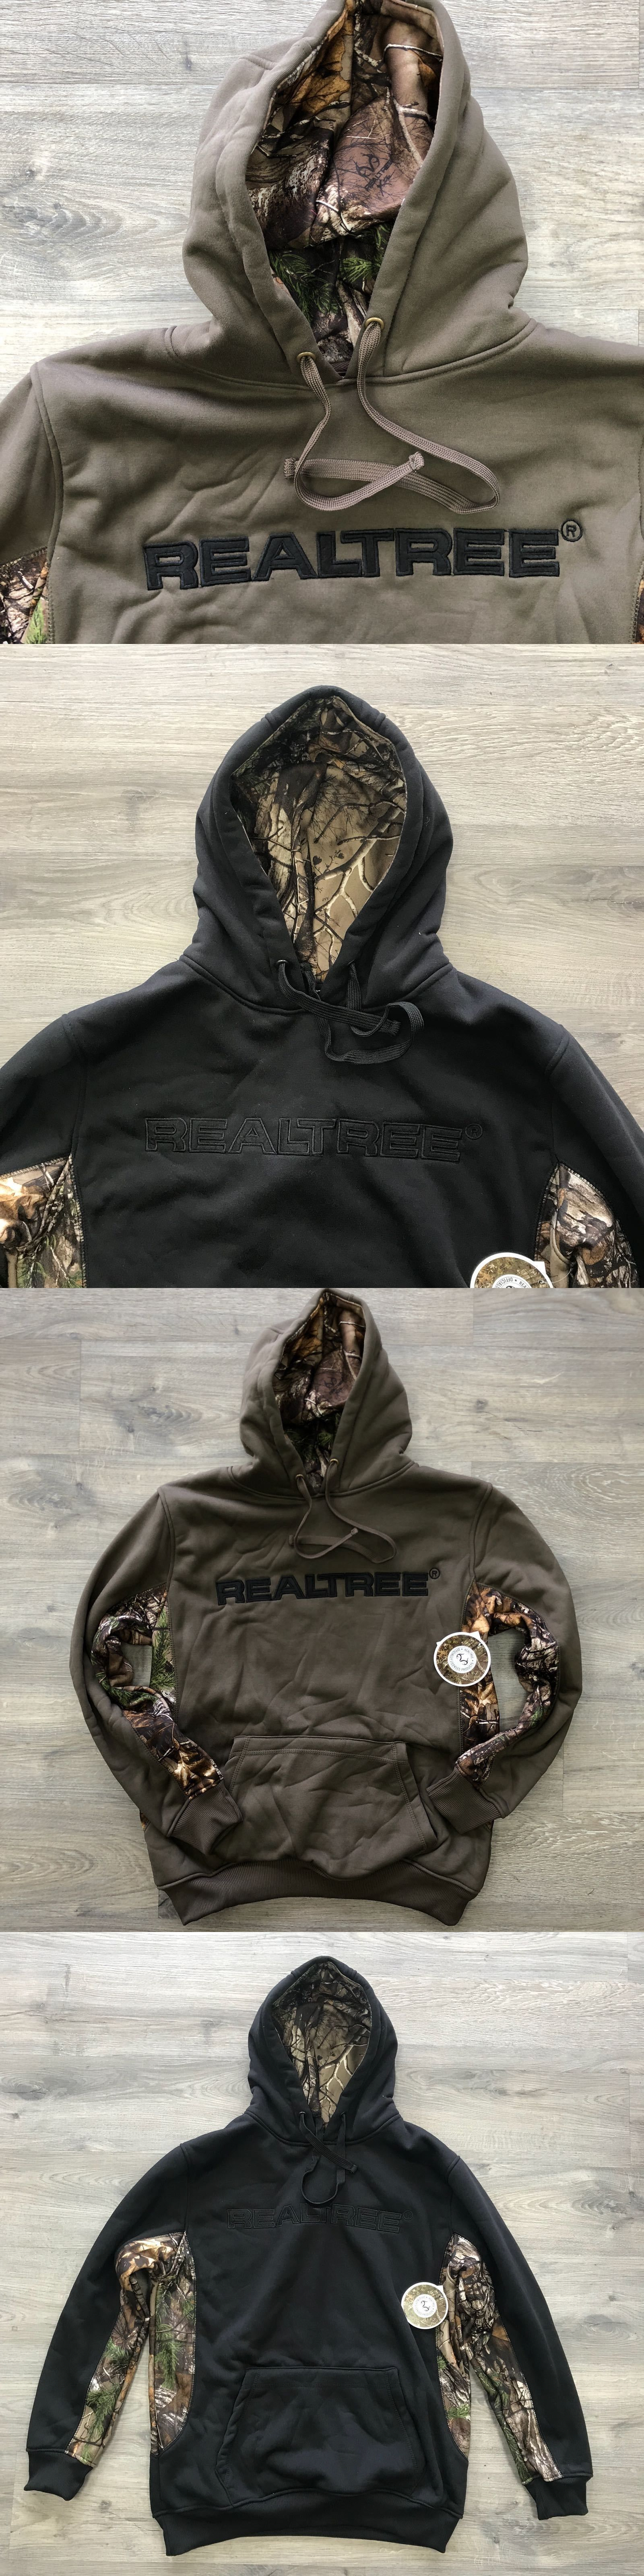 Clothing Shoes and Accessories 36239  Realtree Earthletics Men Pullover  Fleece Hoodie Brown Black Outdoor Hunting Camo -  BUY IT NOW ONLY   19.99  on  eBay ... 10107d8e8fa5